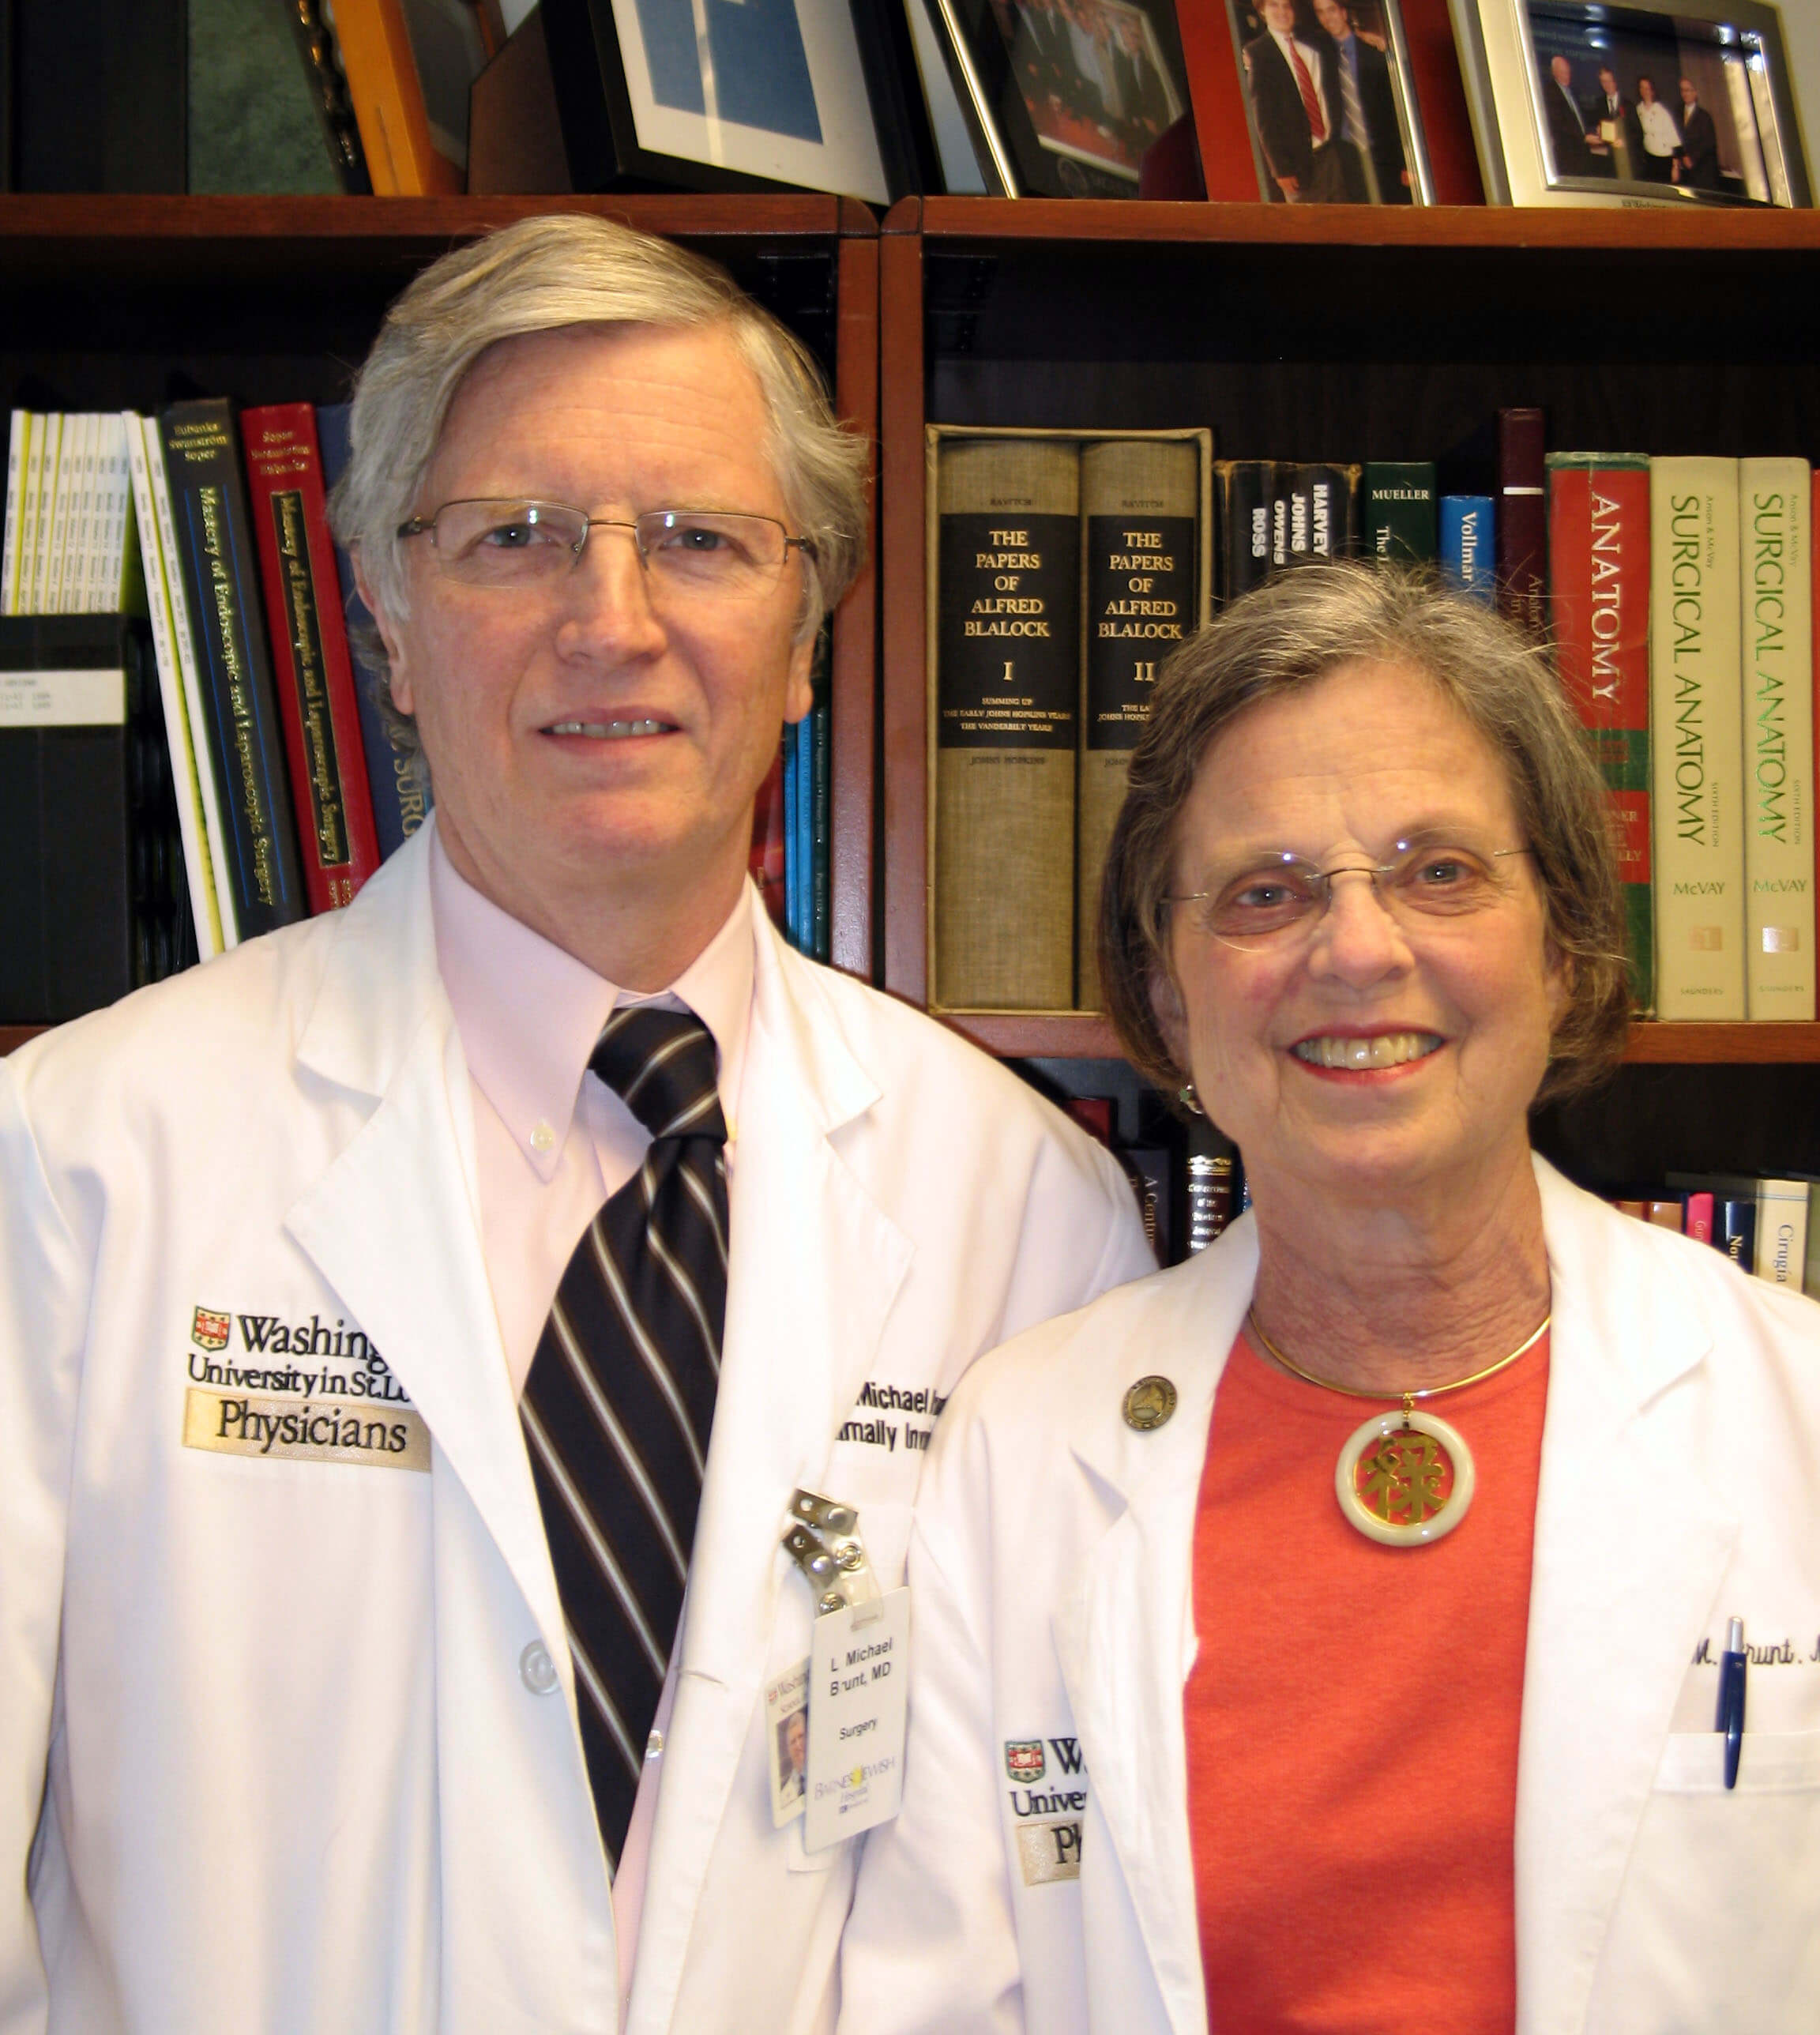 Drs. Michael and Elizabeth Brunt